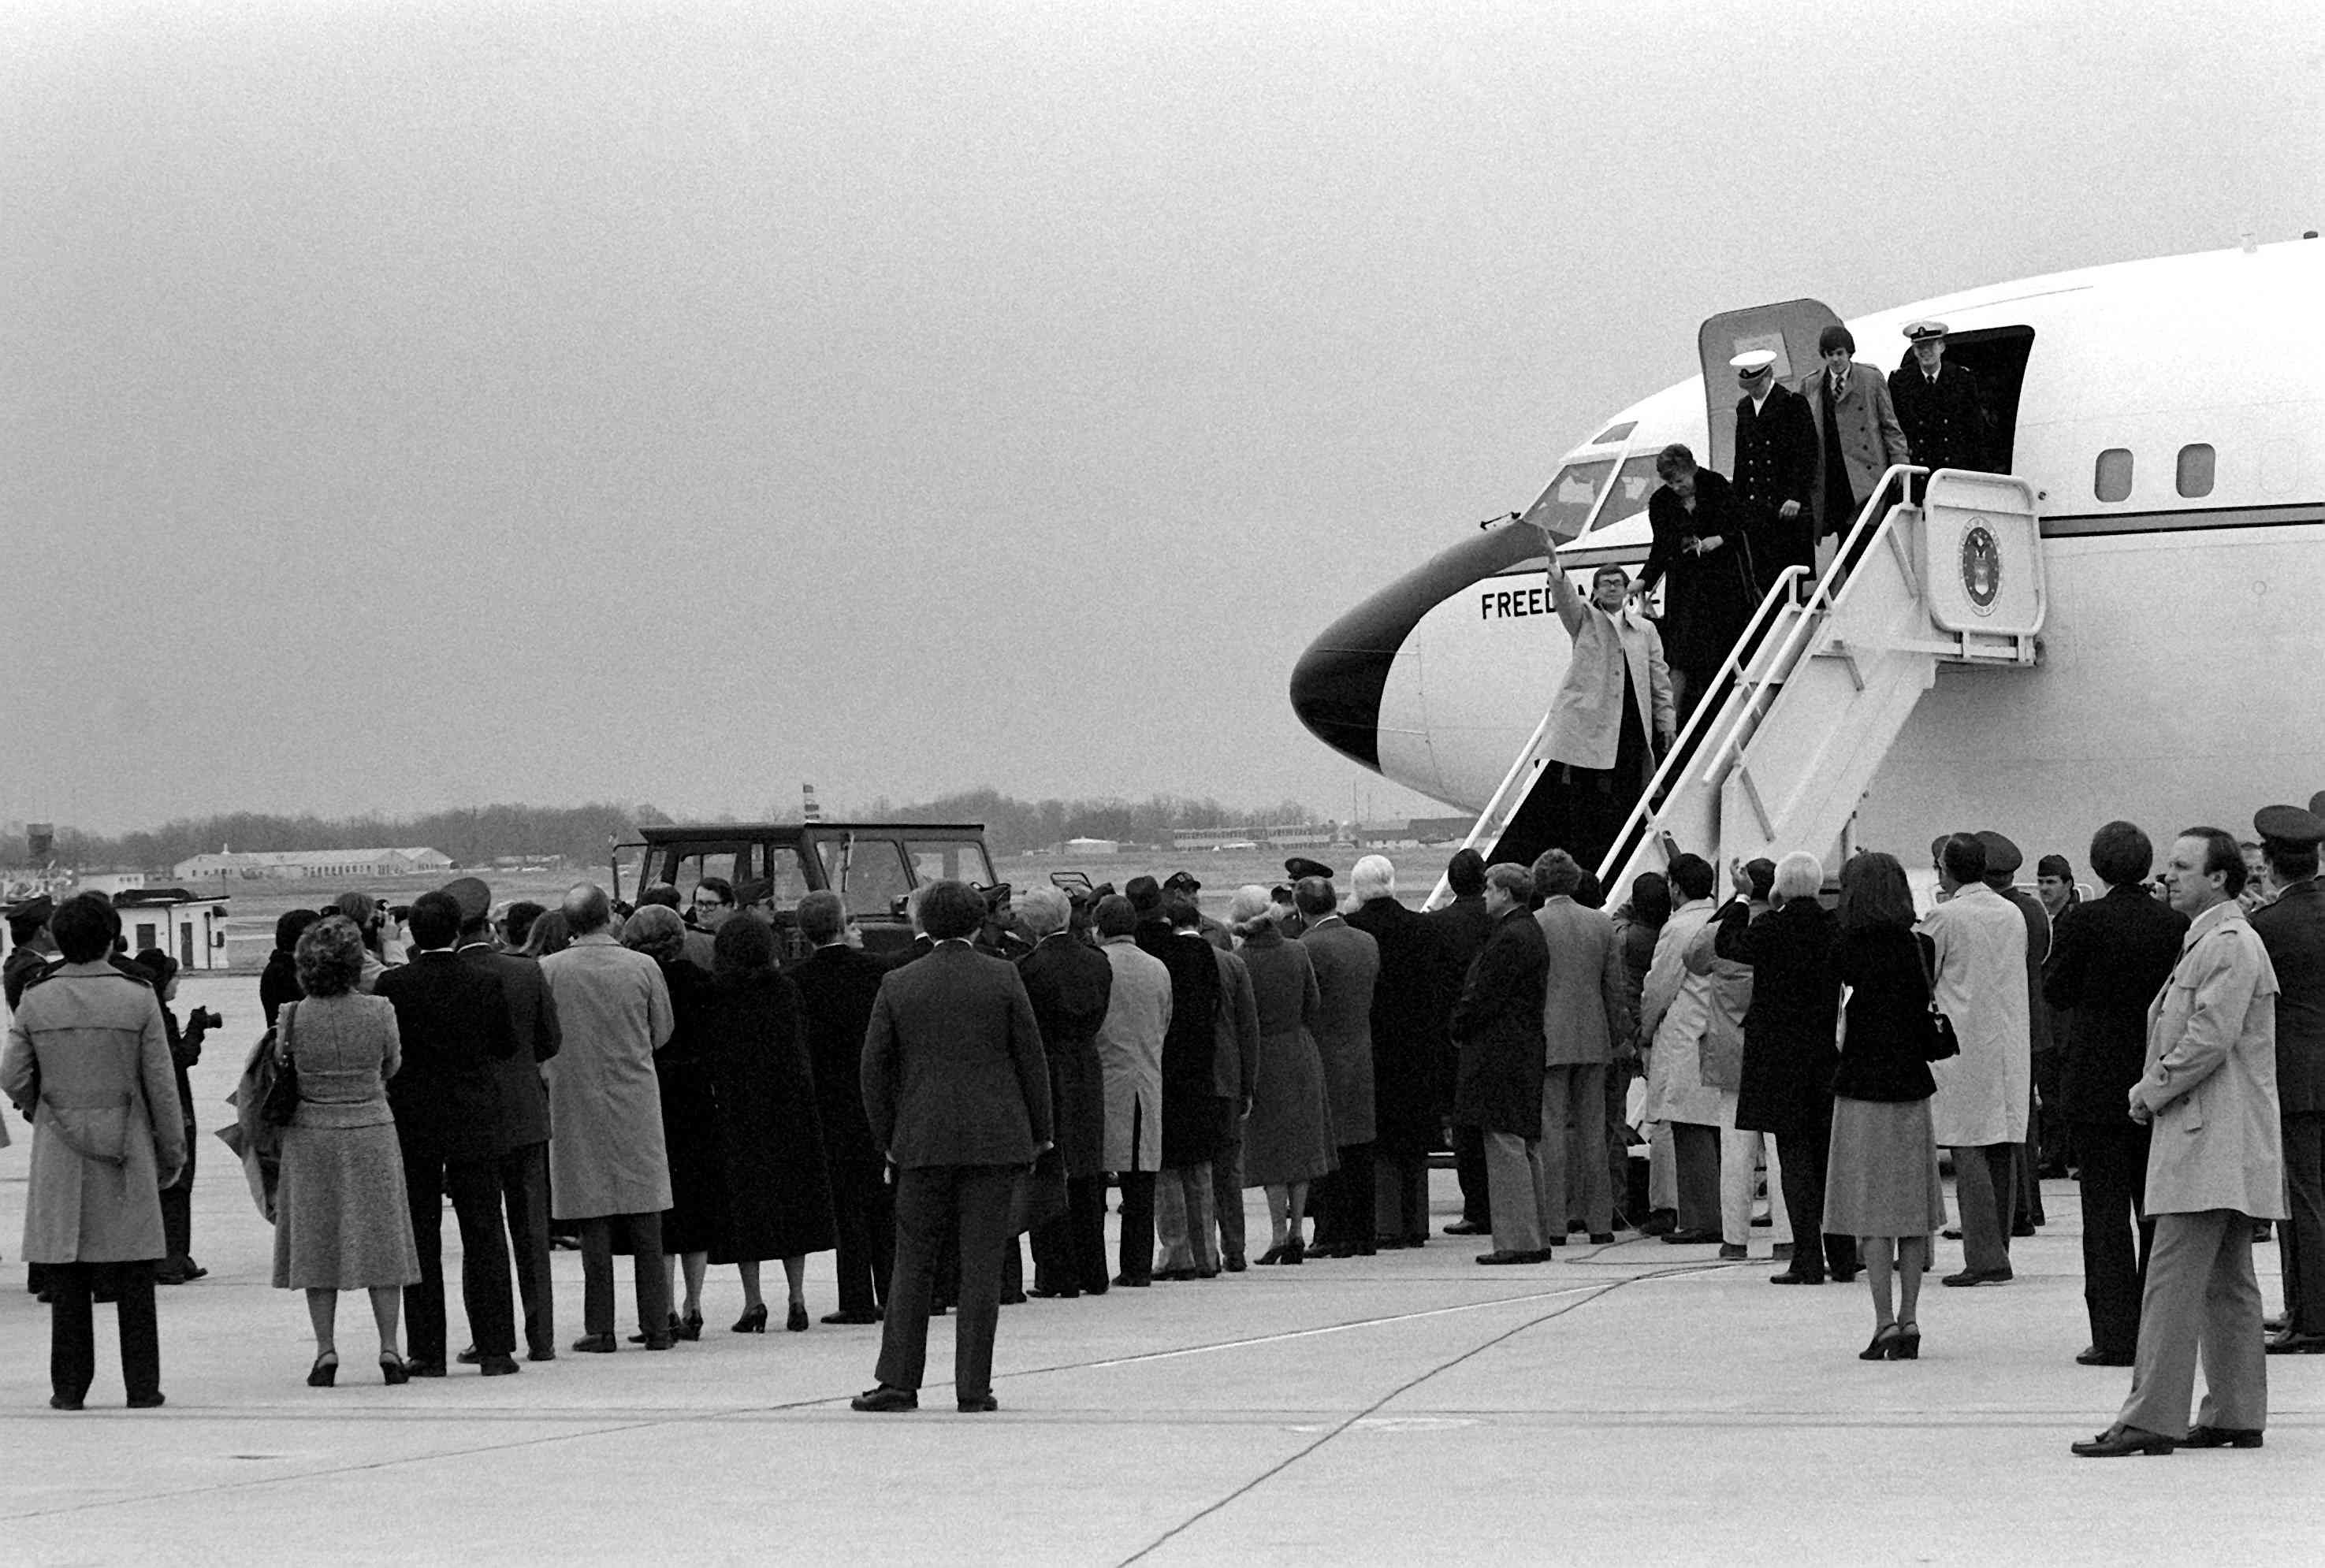 Freed Americans hostages disembark Freedom One, an Air Force VC-137 Stratoliner aircraft, upon their arrival at the base, January 27, 1981